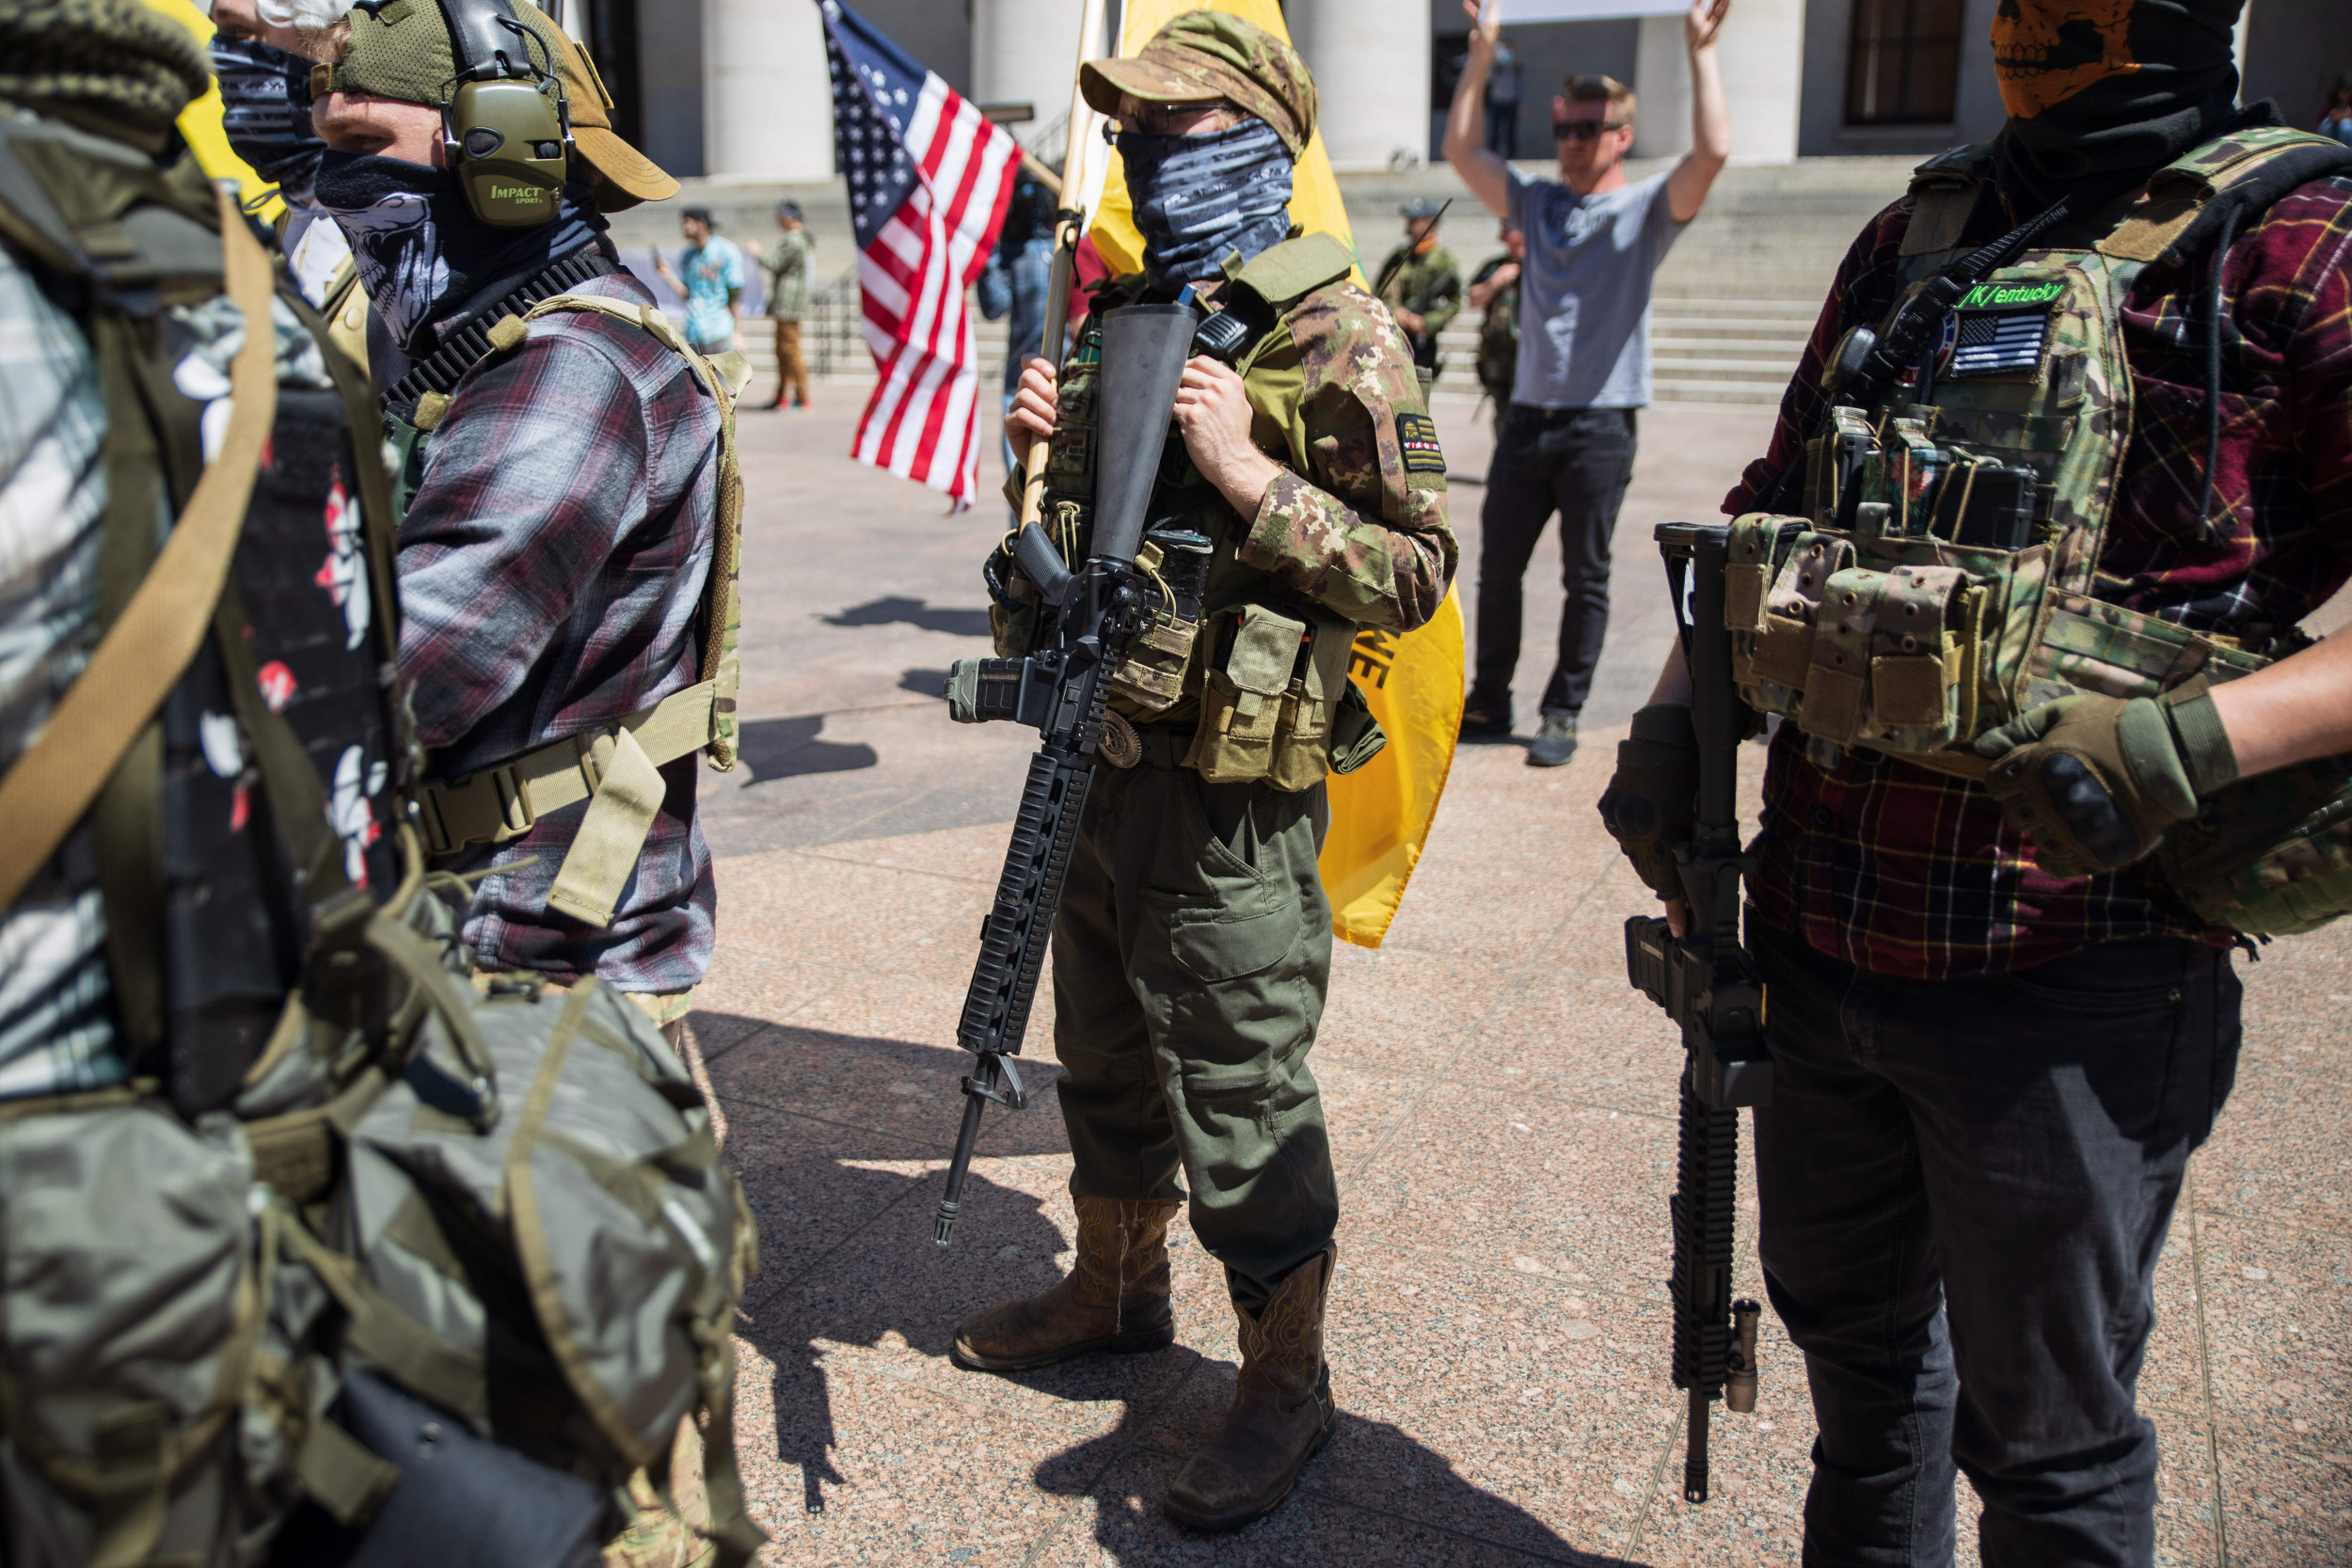 Donald Trump's Call to Militia to 'Watch' Polling Places Raises Fears of Voter Intimidation